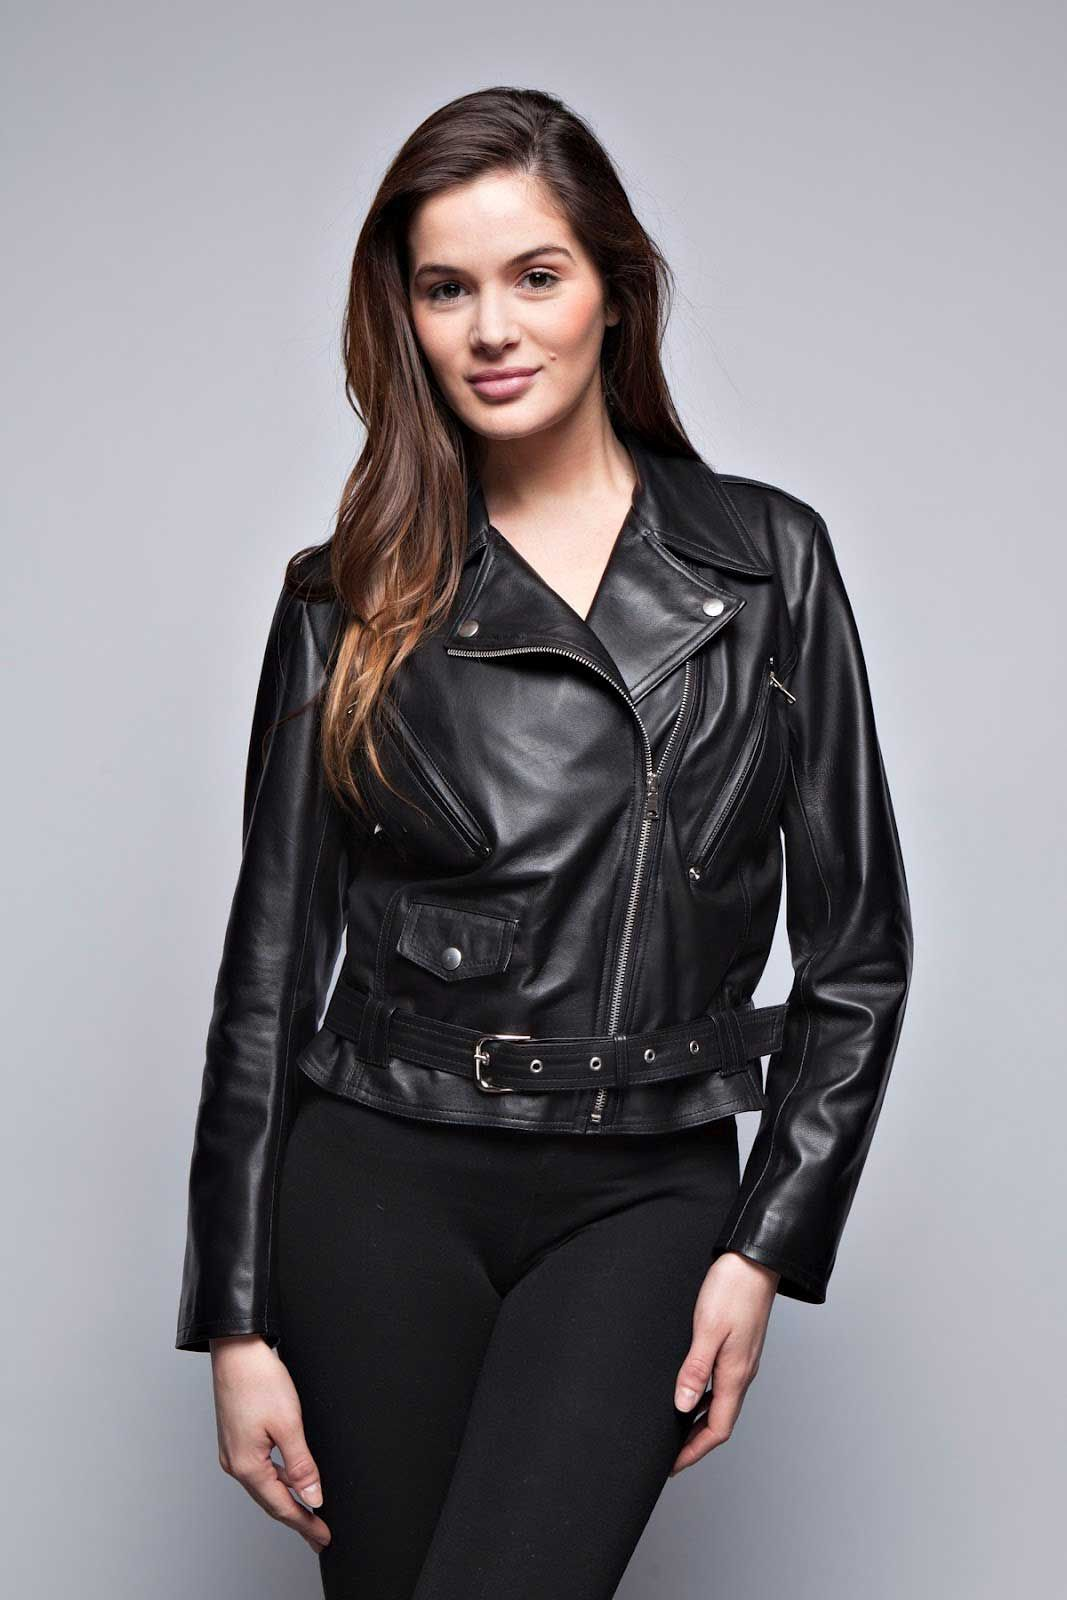 Leather jackets Leather and Jackets on Pinterest